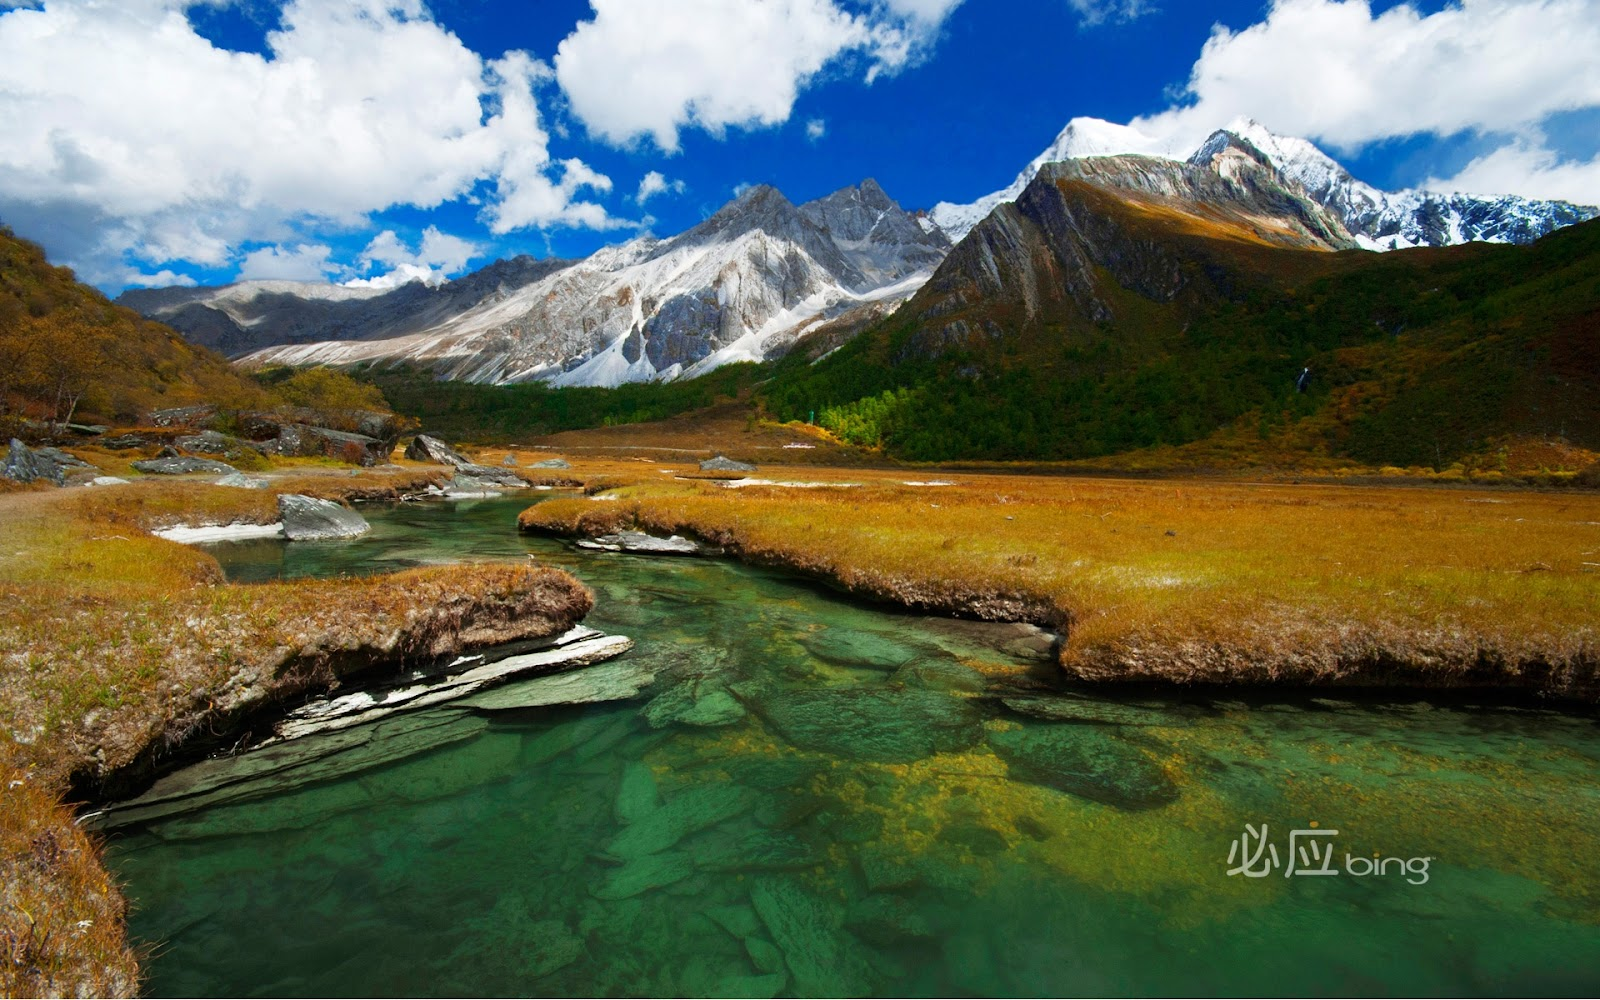 natural scenery widescreen - photo #3